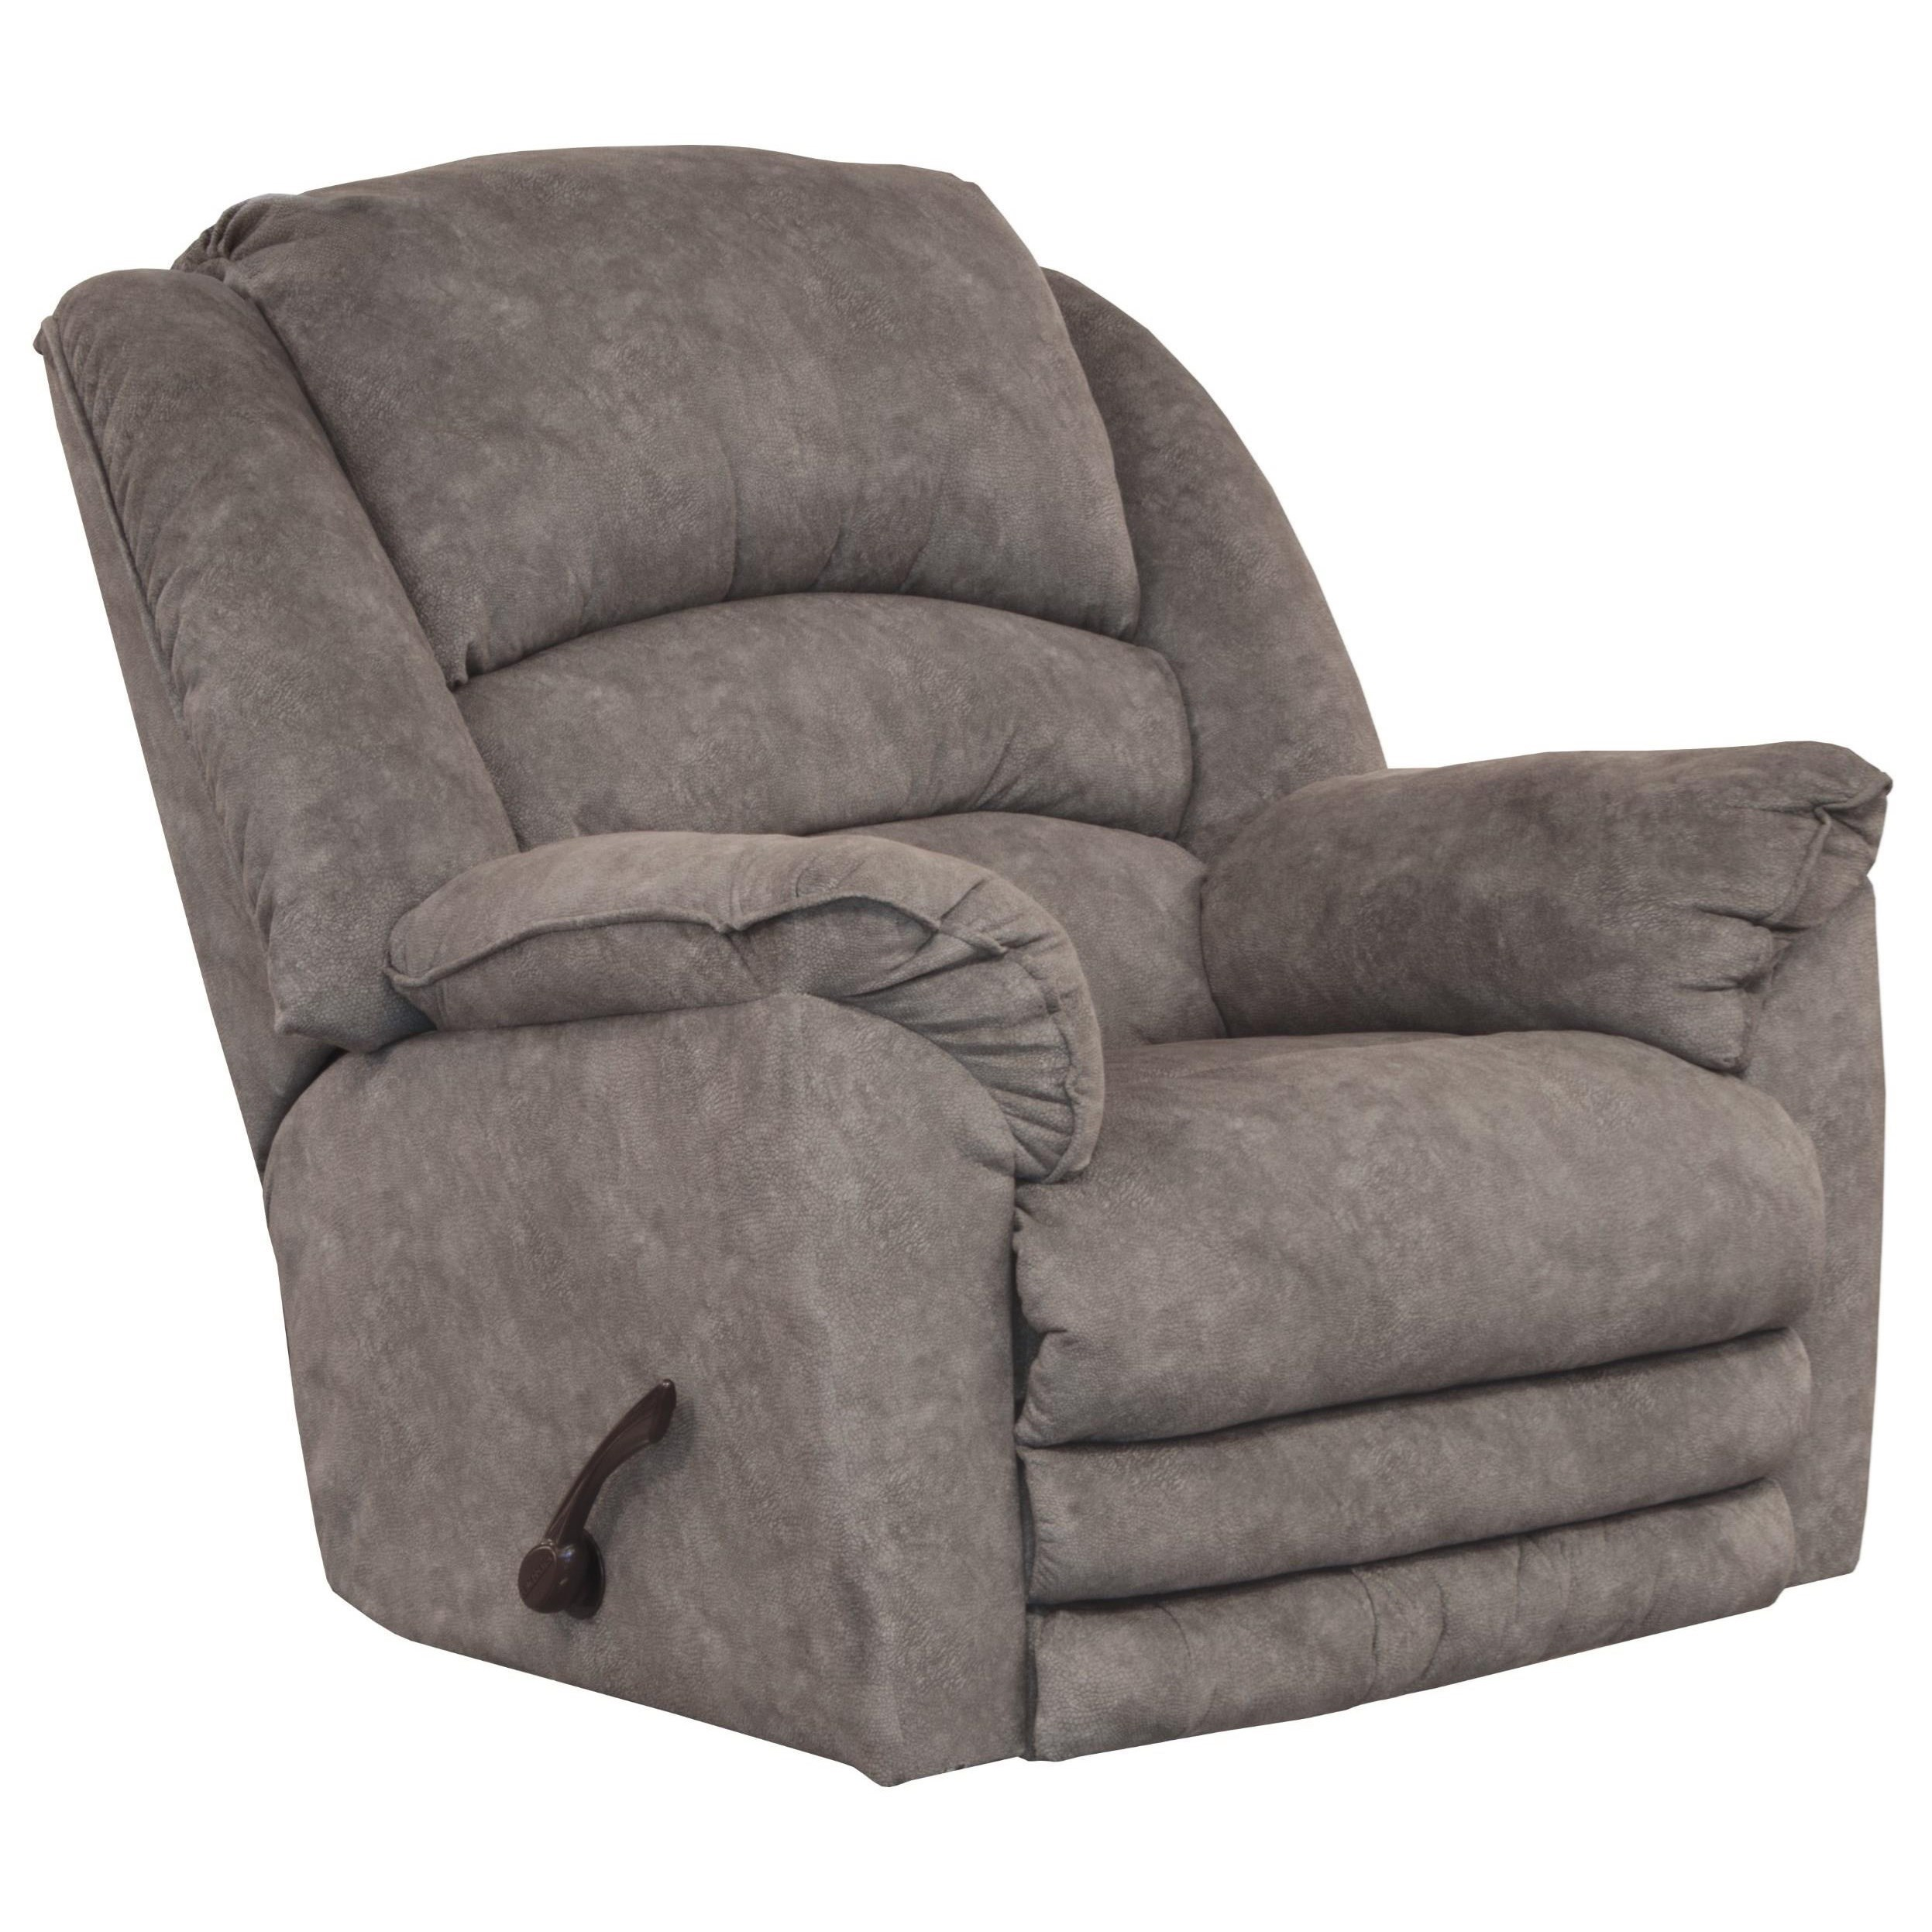 Chaise Rocker Recliner w/ Extended Footrest